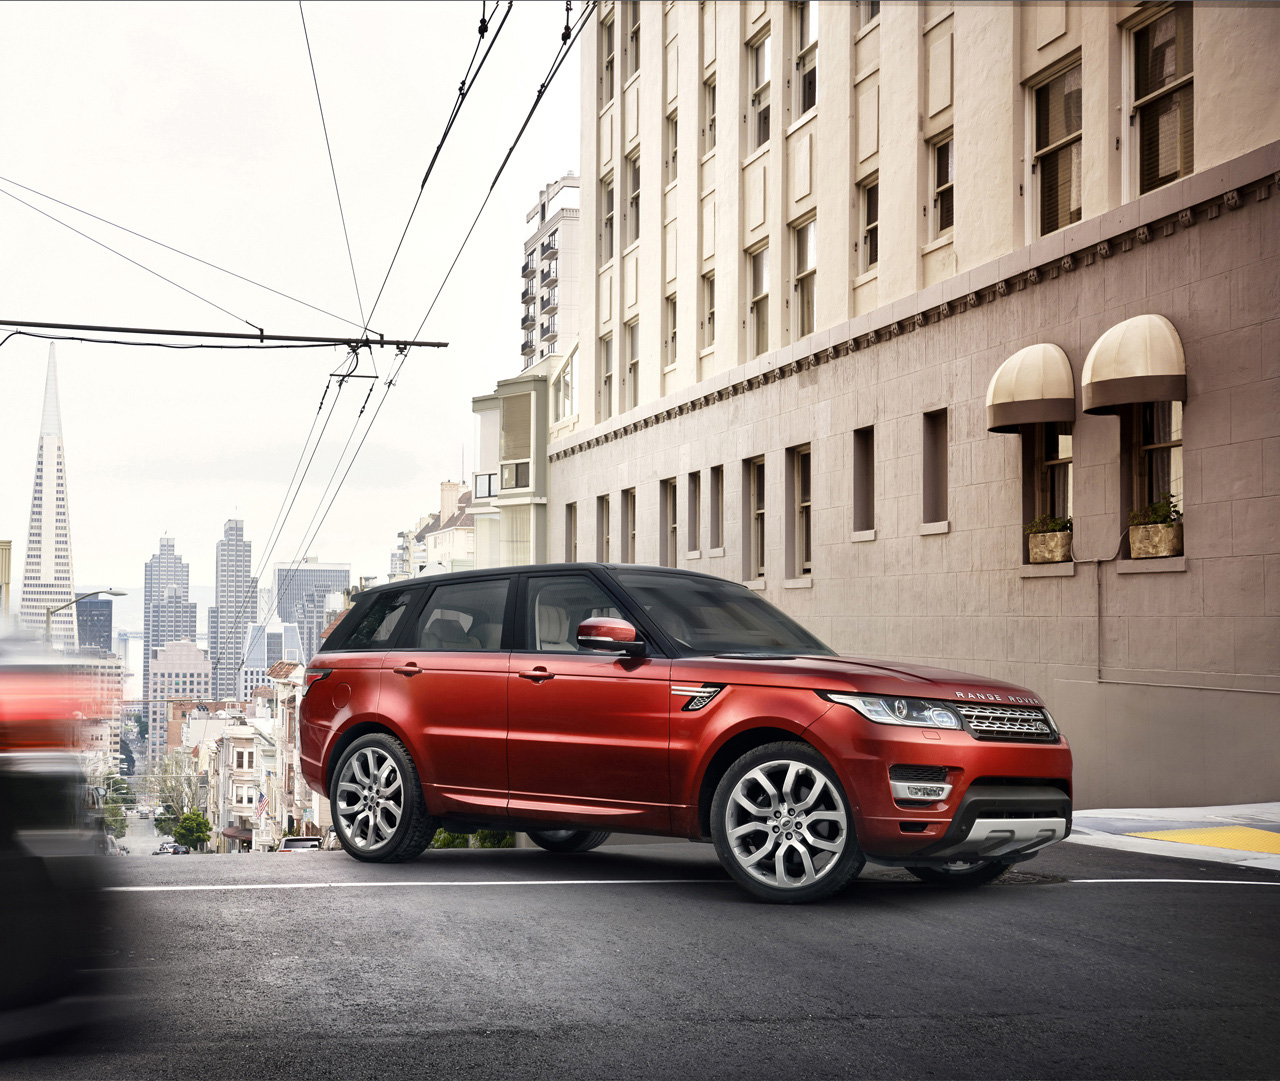 Range Rover Sport 5 0i V8 Supercharged 510 Hp 2013: Range Rover Sport UK Prices, Specs Announced